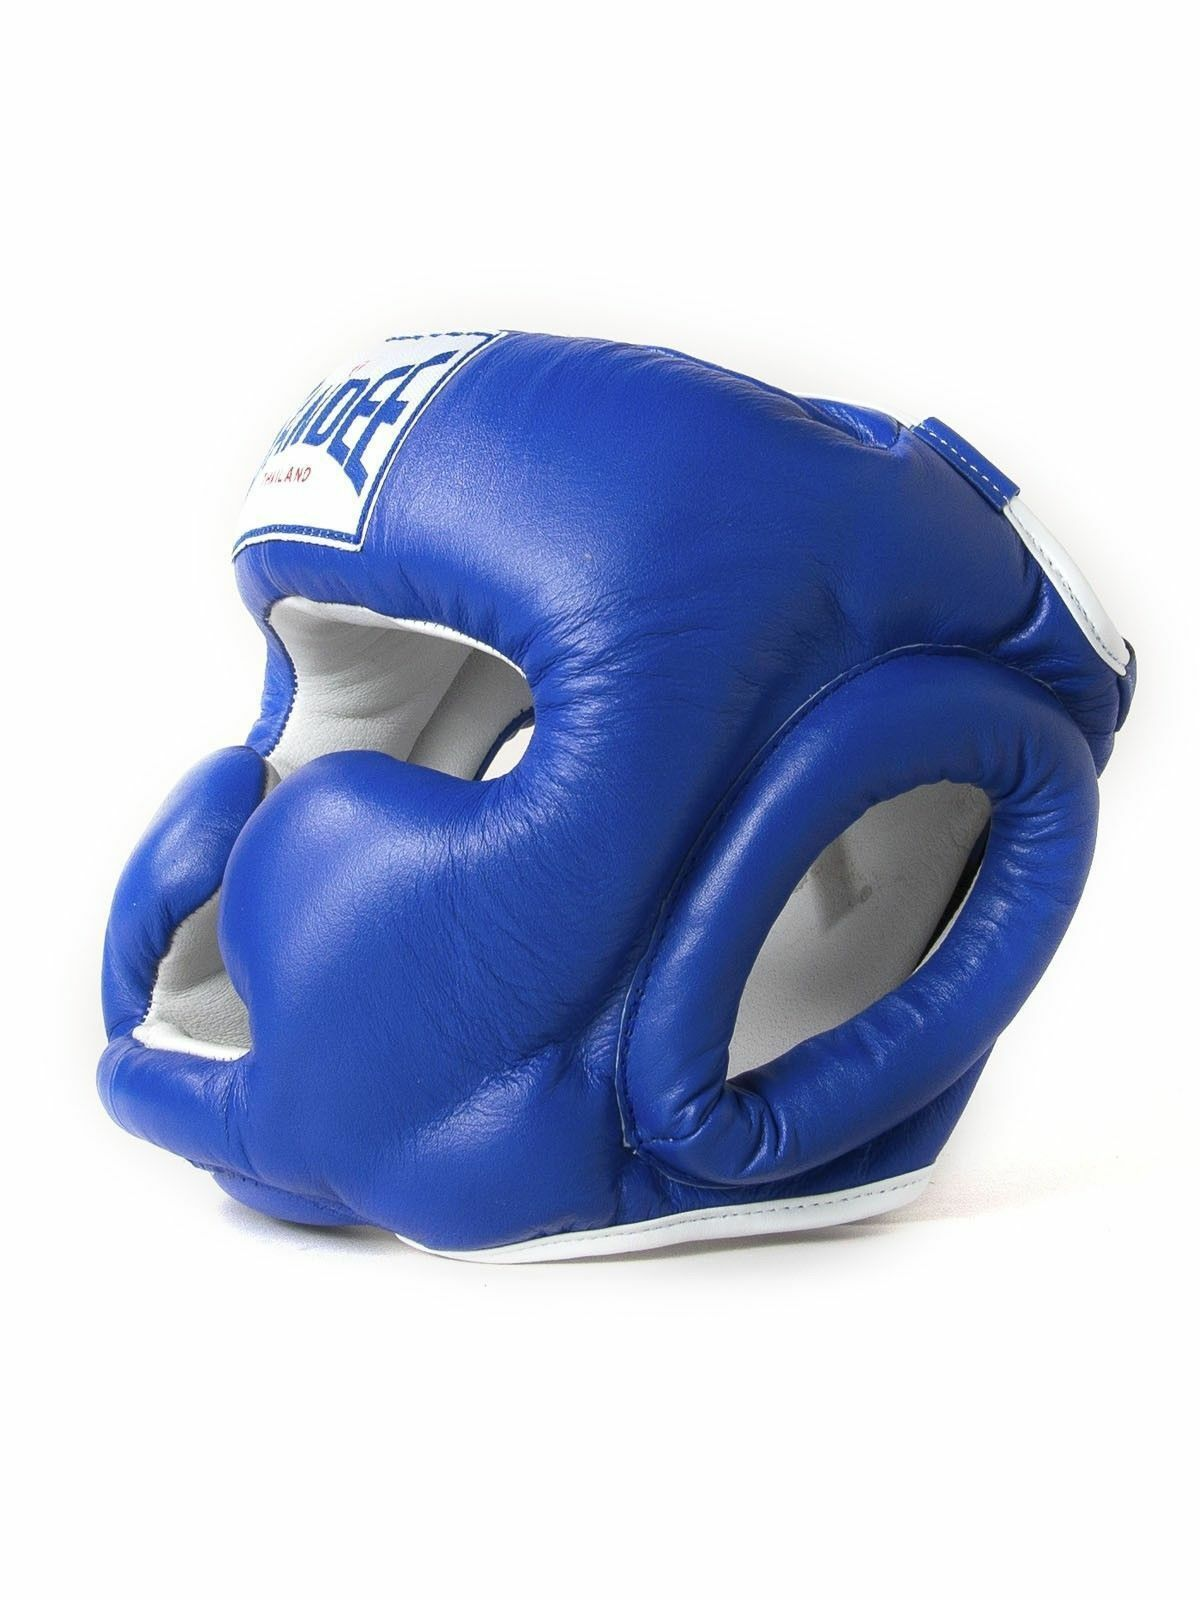 SANDEE Closed sintetica face blu Pelle sintetica Closed Head Guard MUAY-THAI BOXING-Kids 64acf2